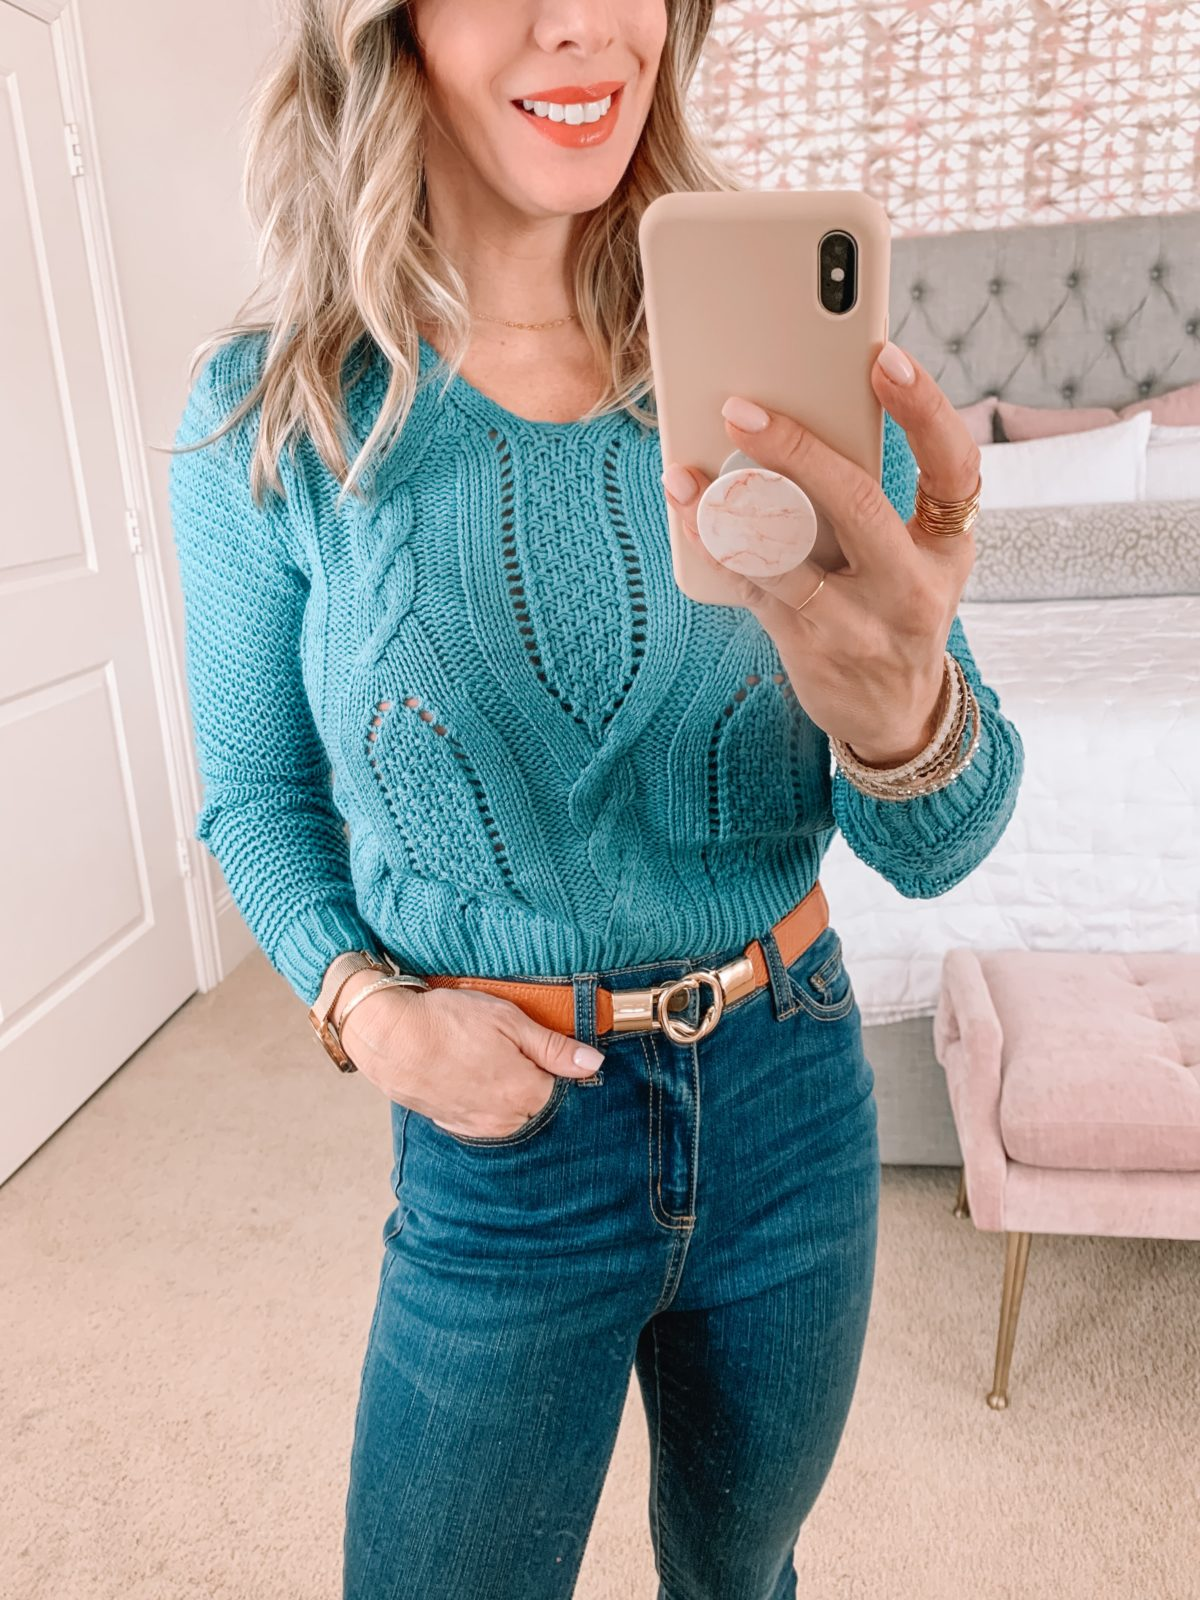 Amazon Fashion Faves, Blue Sweater, Jeans, Booties, Stretchy Belt